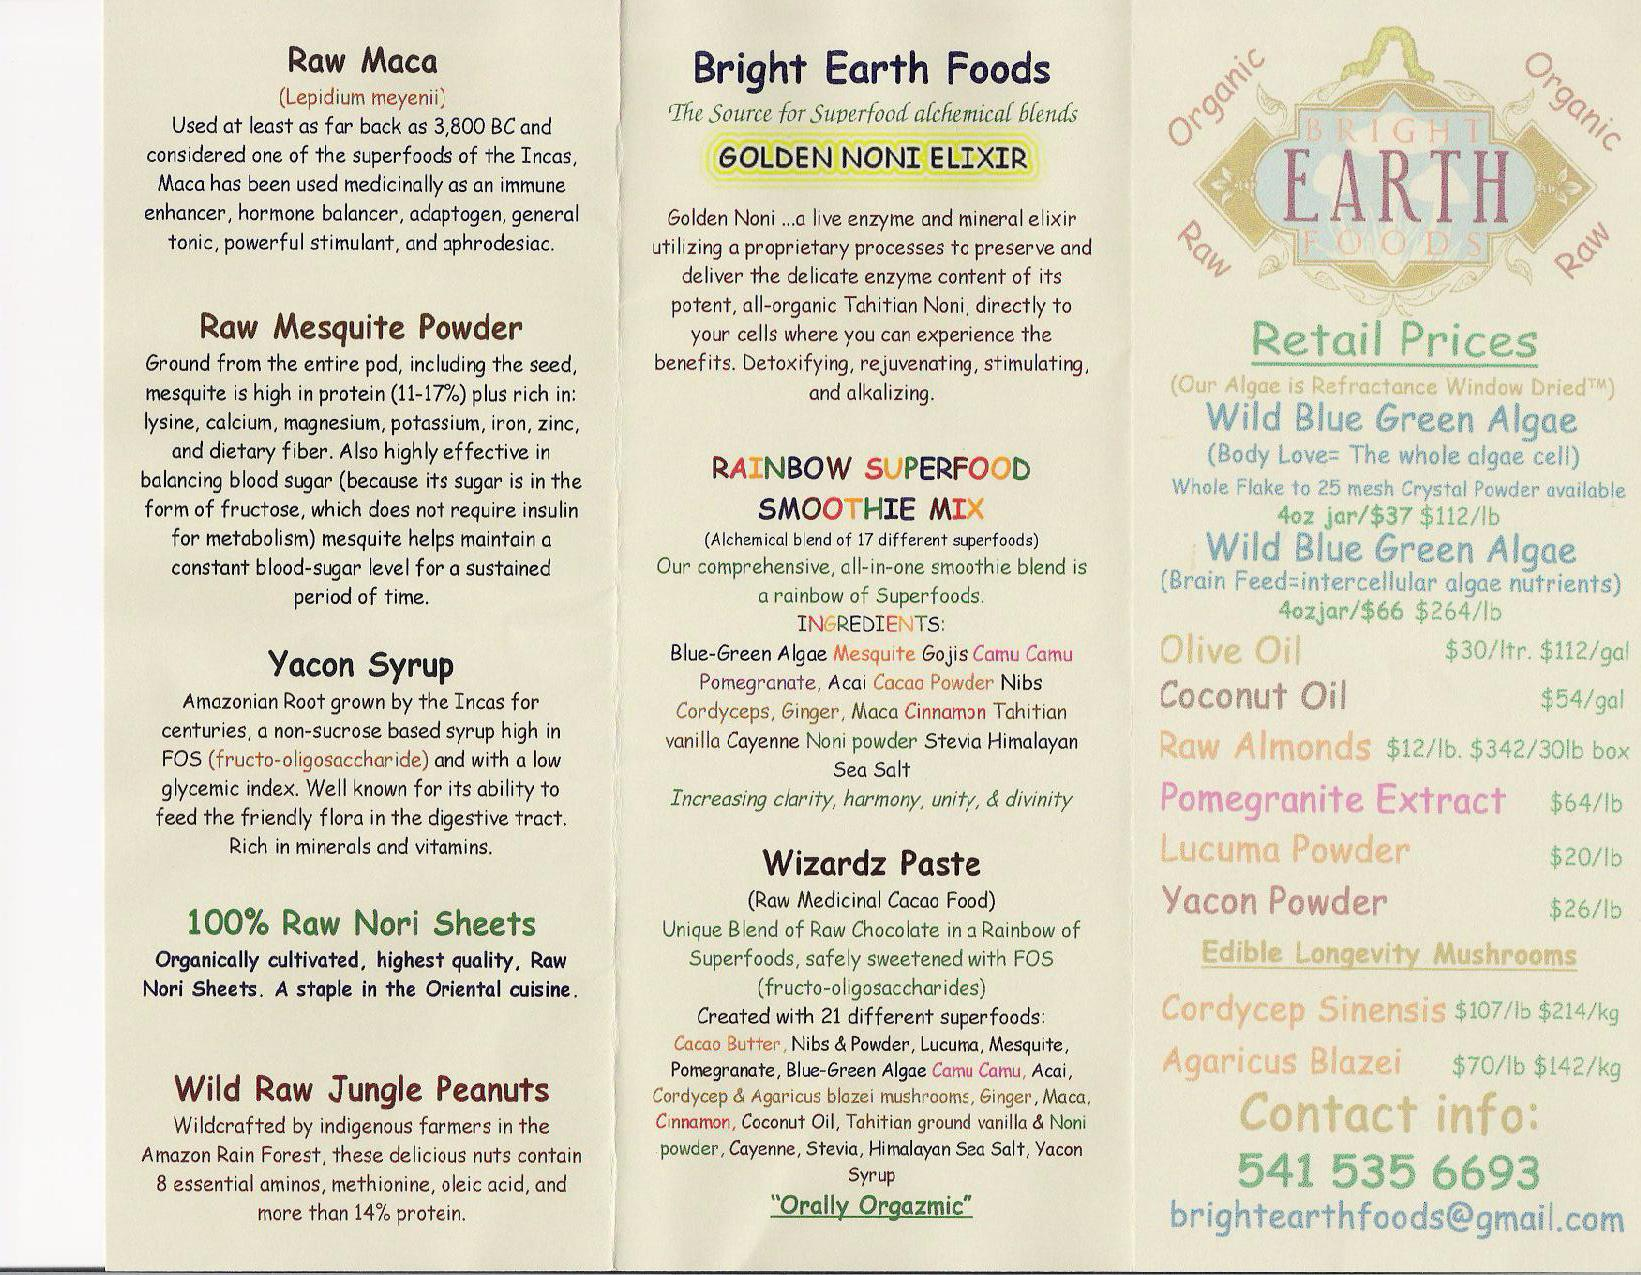 Bright Earth Foods Broch2